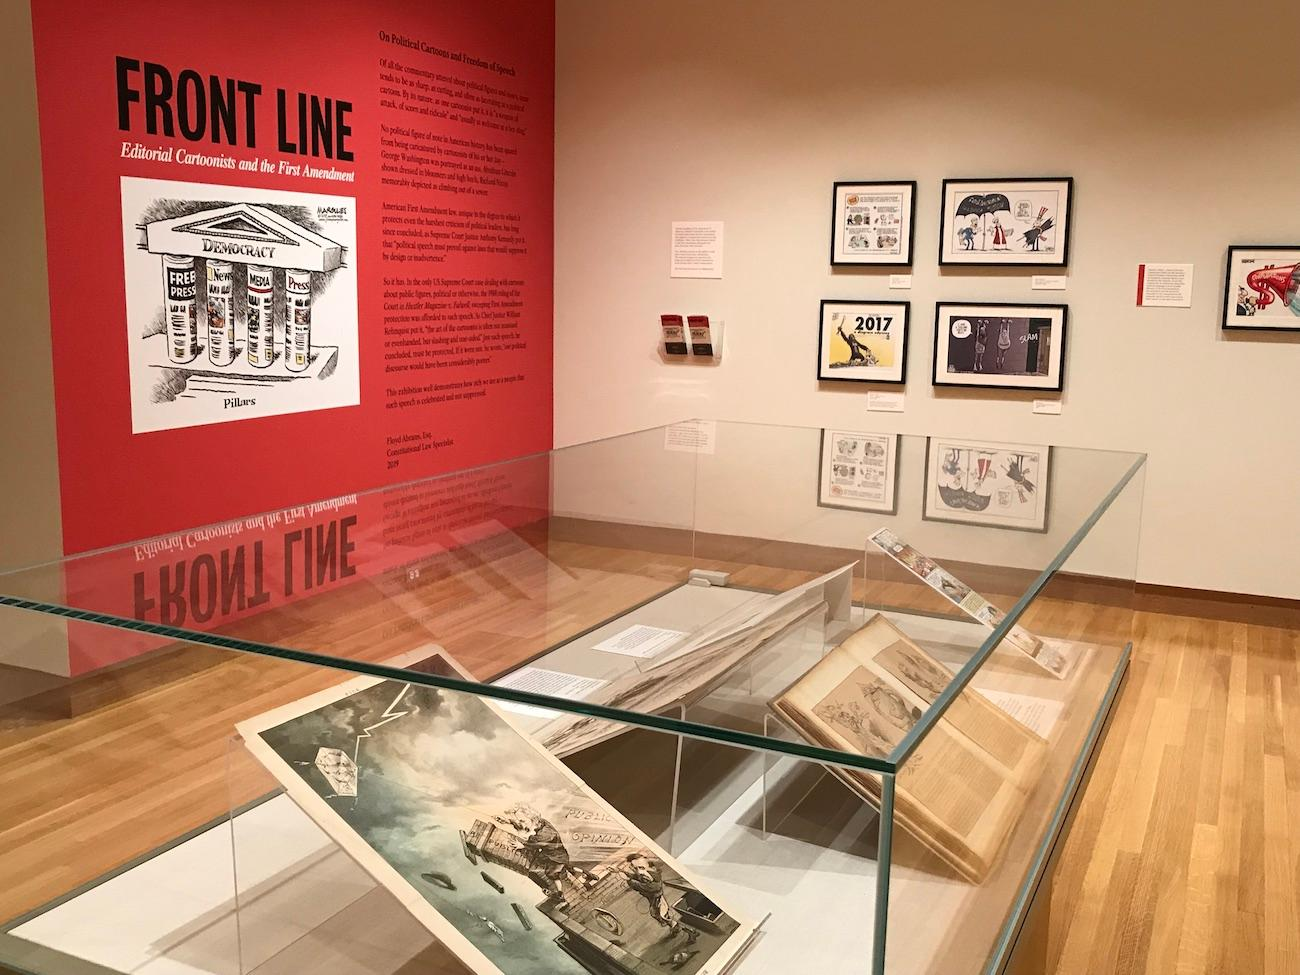 The 'Front Line' exhibit examines free speech through historical cartoons. / Image courtesy of the Billy Ireland Cartoon Library & Museum // Published: 7.1.19